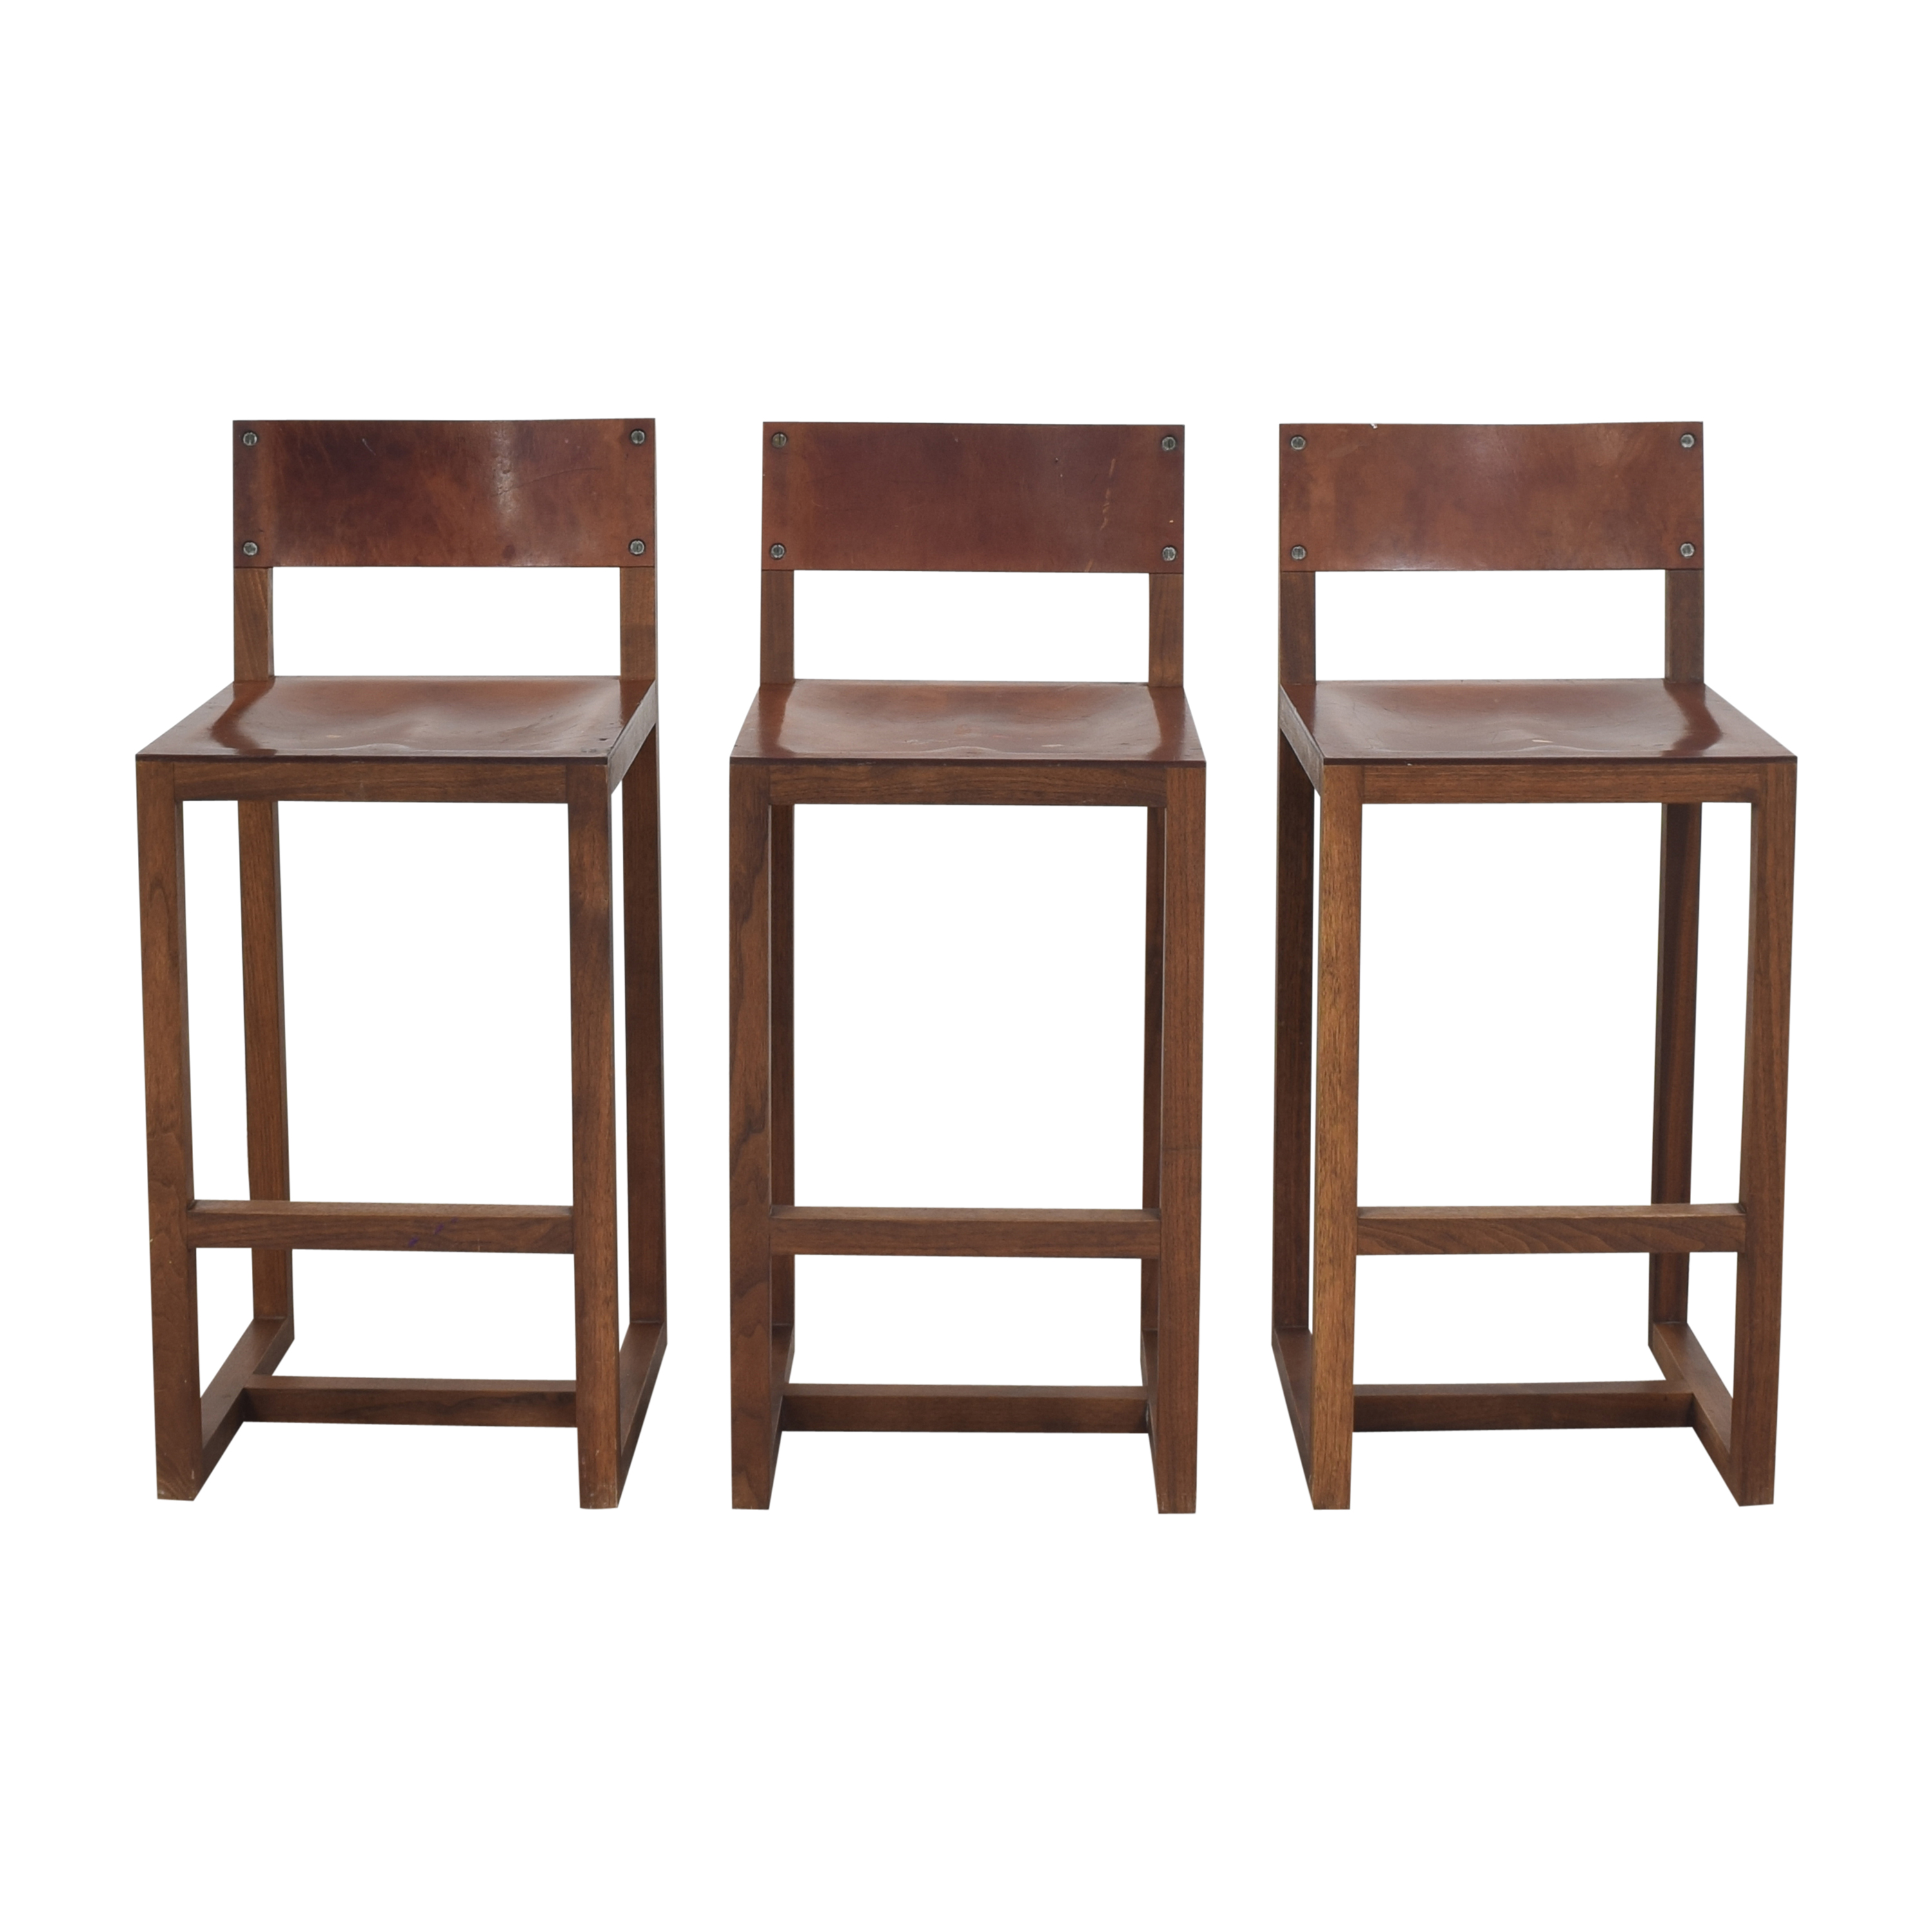 buy BDDW Square Guest Counter Stools BDDW Stools